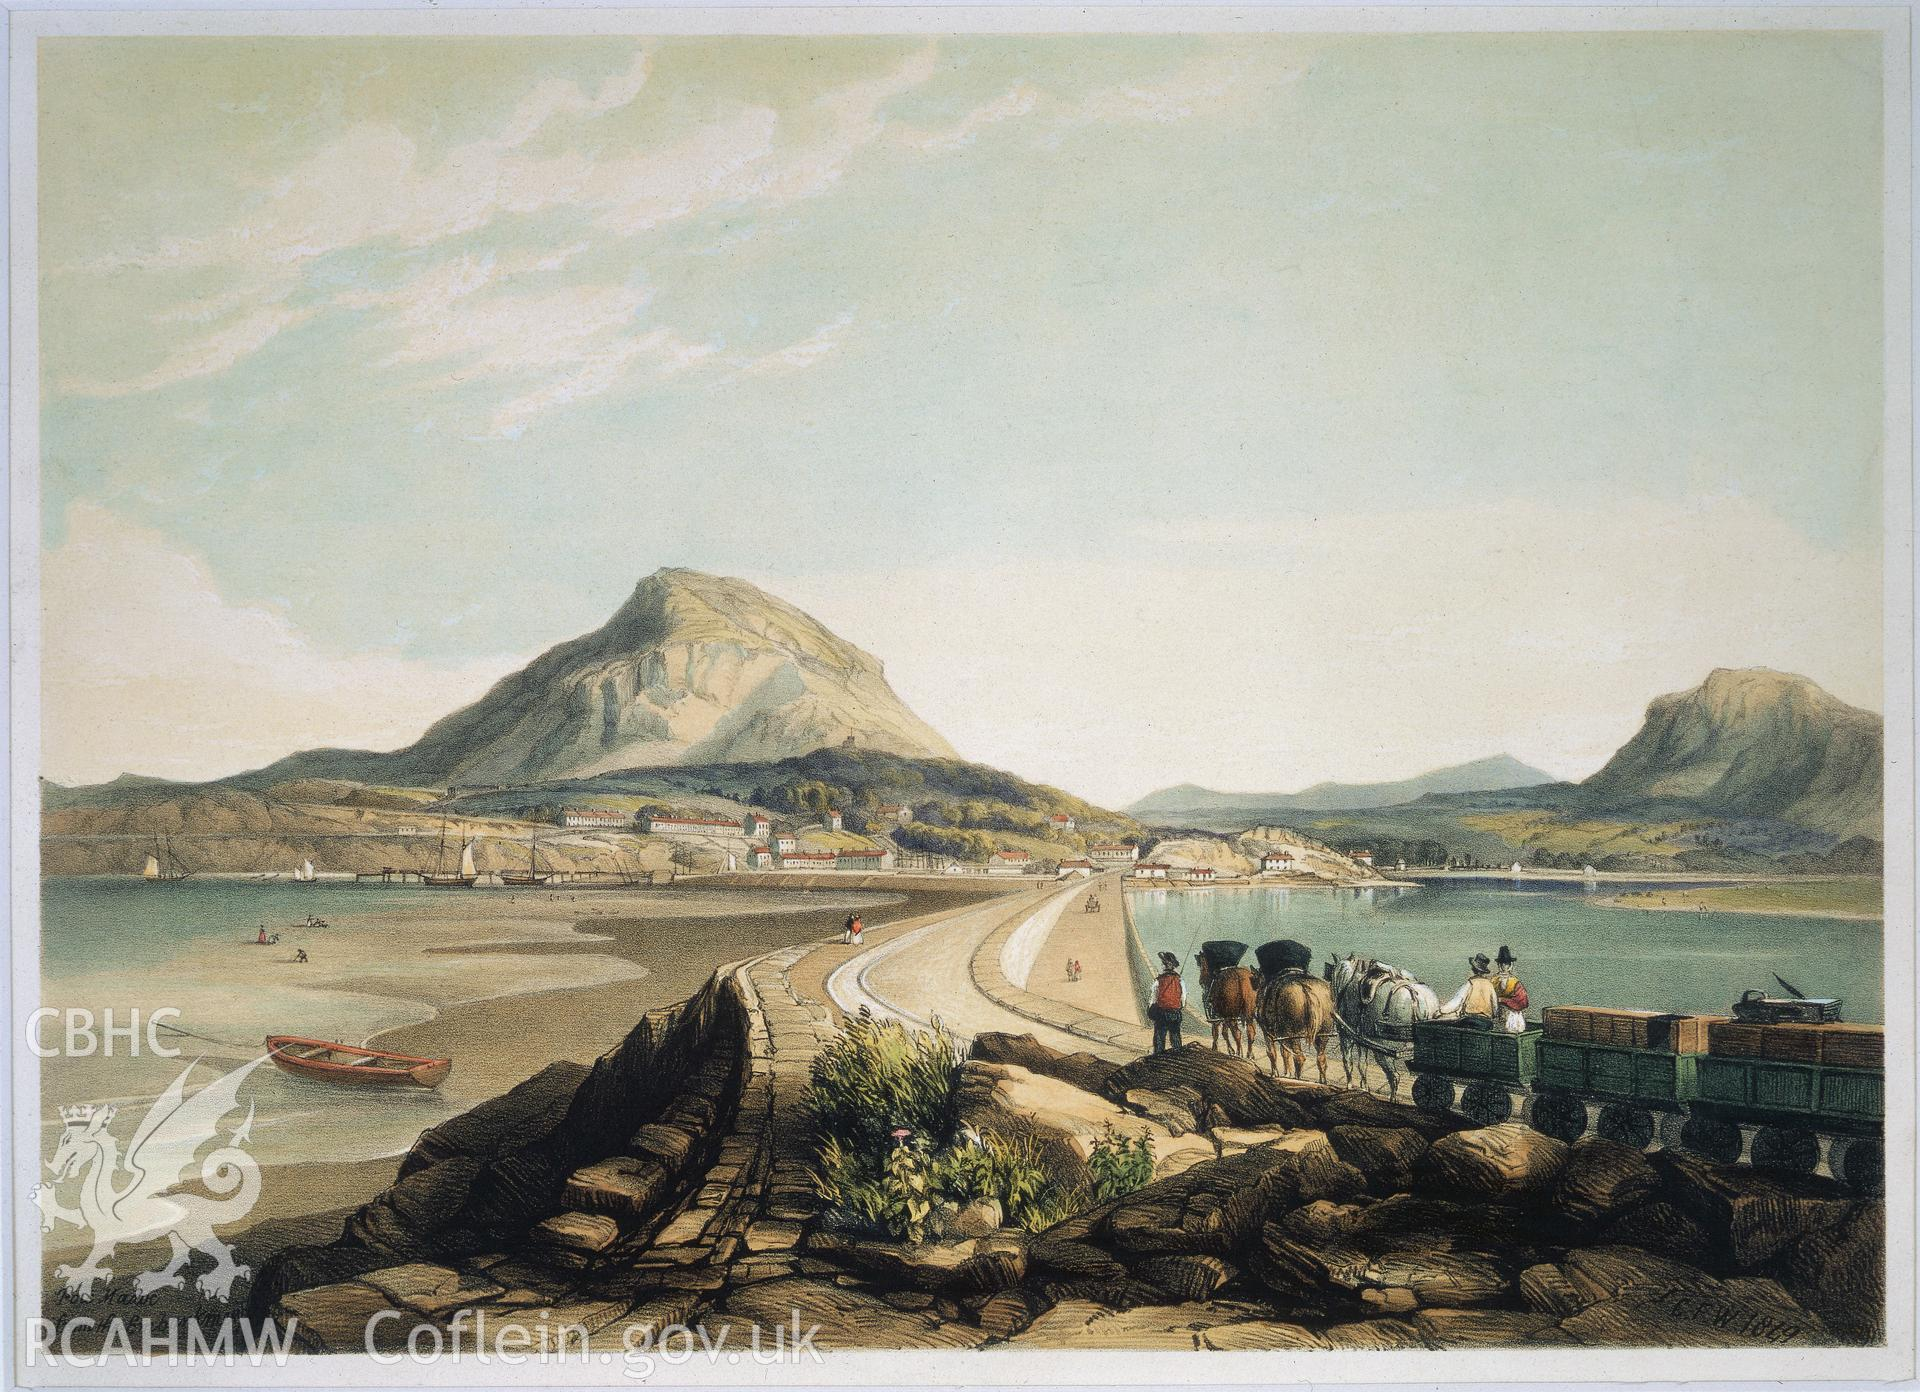 RCAHMW colour transparency showing painting of Traeth Mawr Causeway.